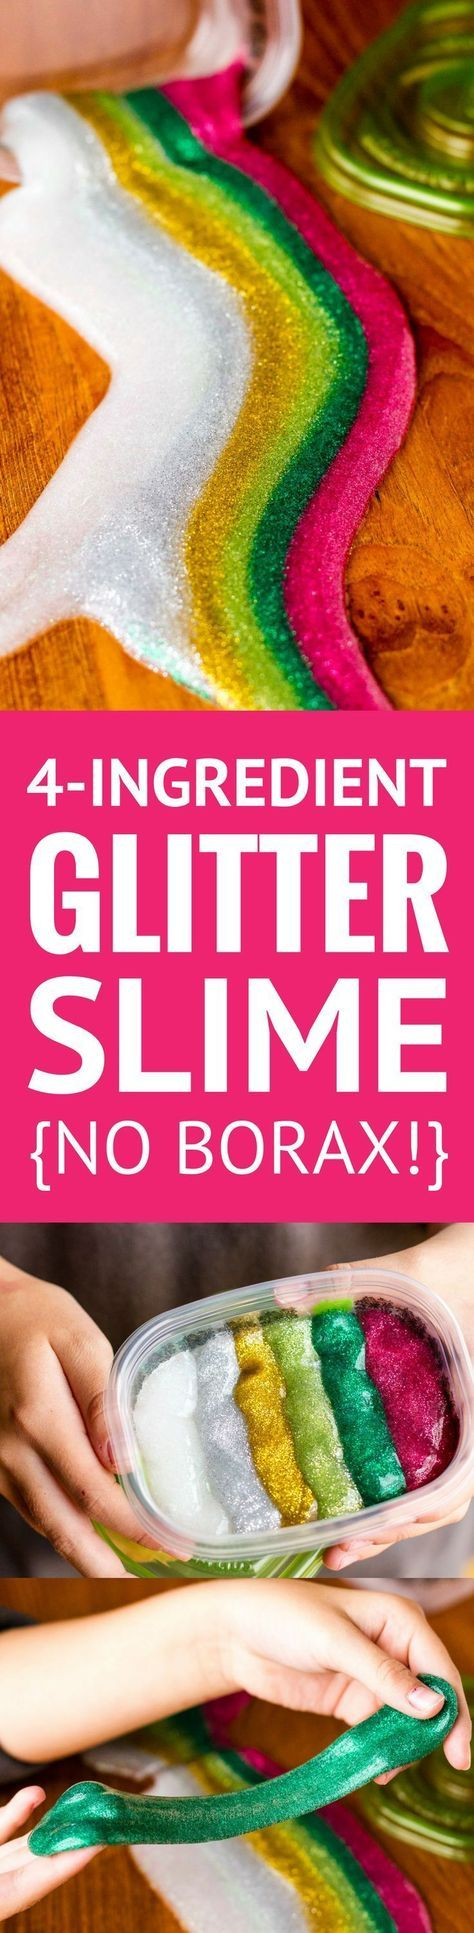 4-Ingredient Glitter Slime Recipe.